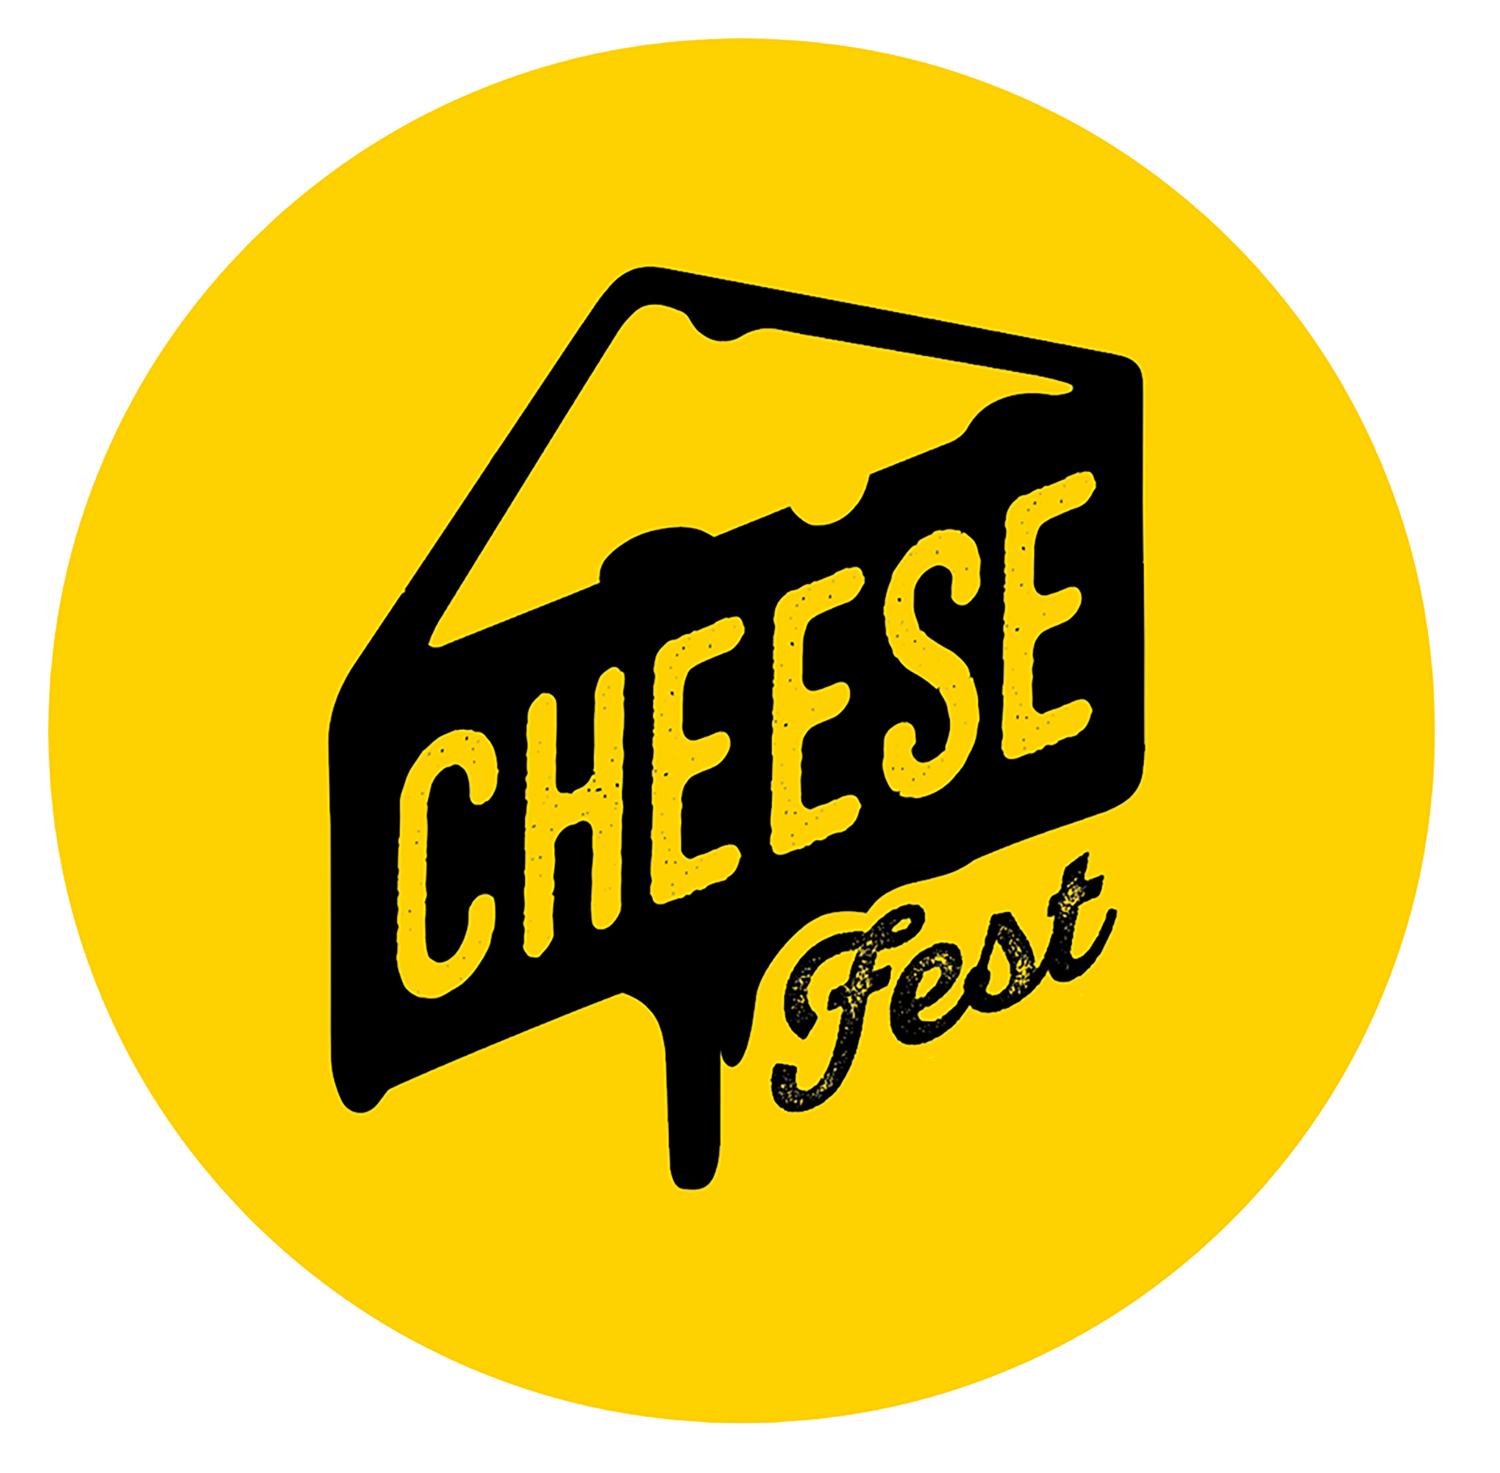 Melted cheese png. Fest uk